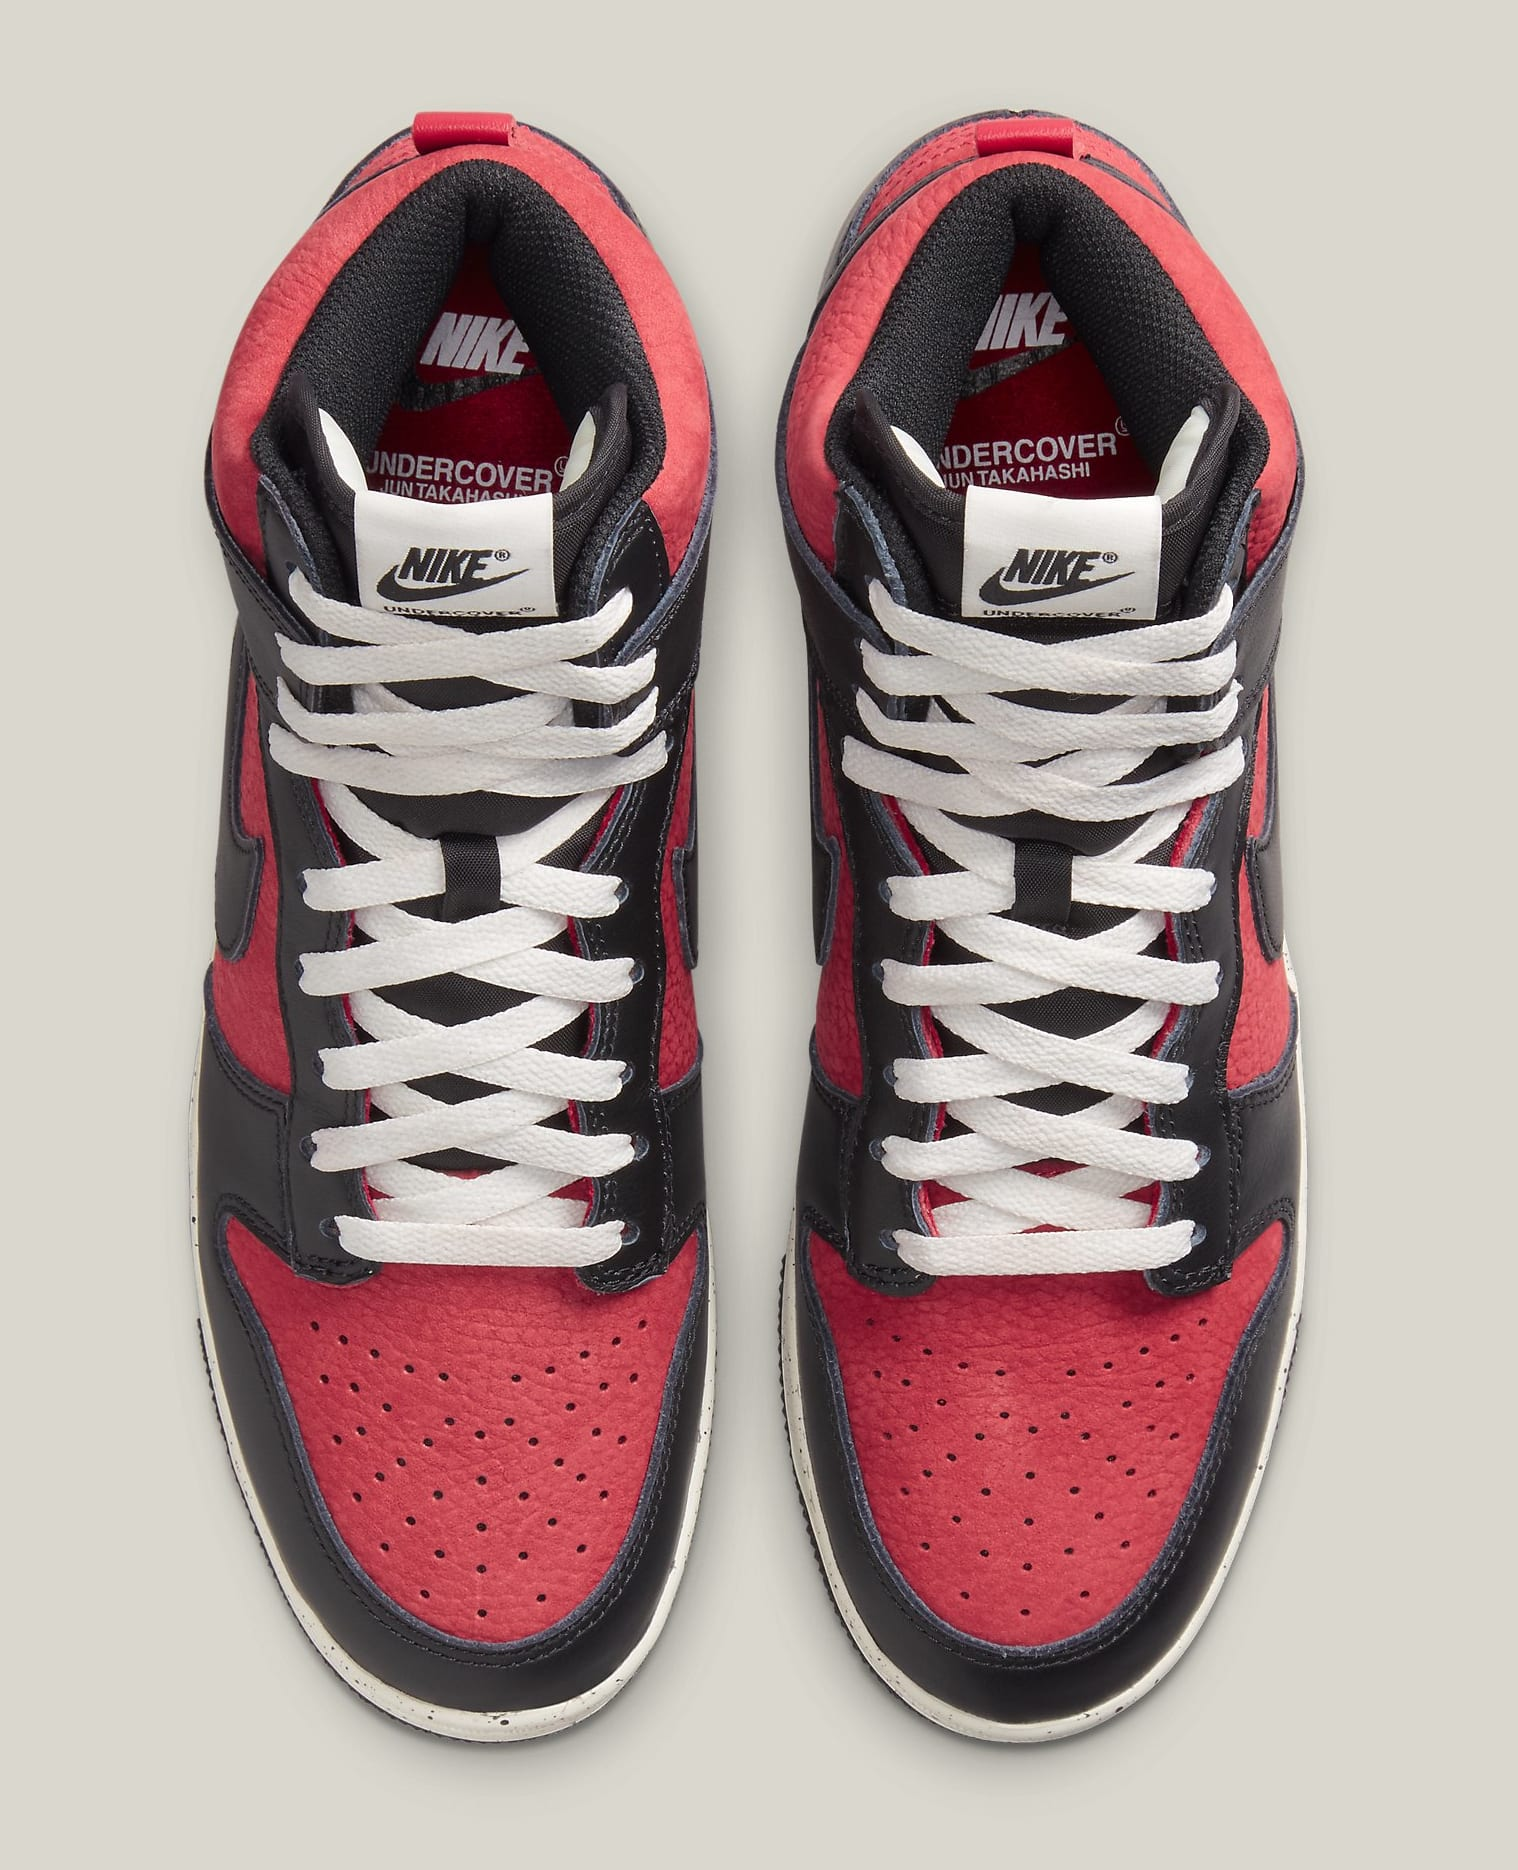 Undercover x Nike Dunk High 1985 'Gym Red' DD9401-600 Top